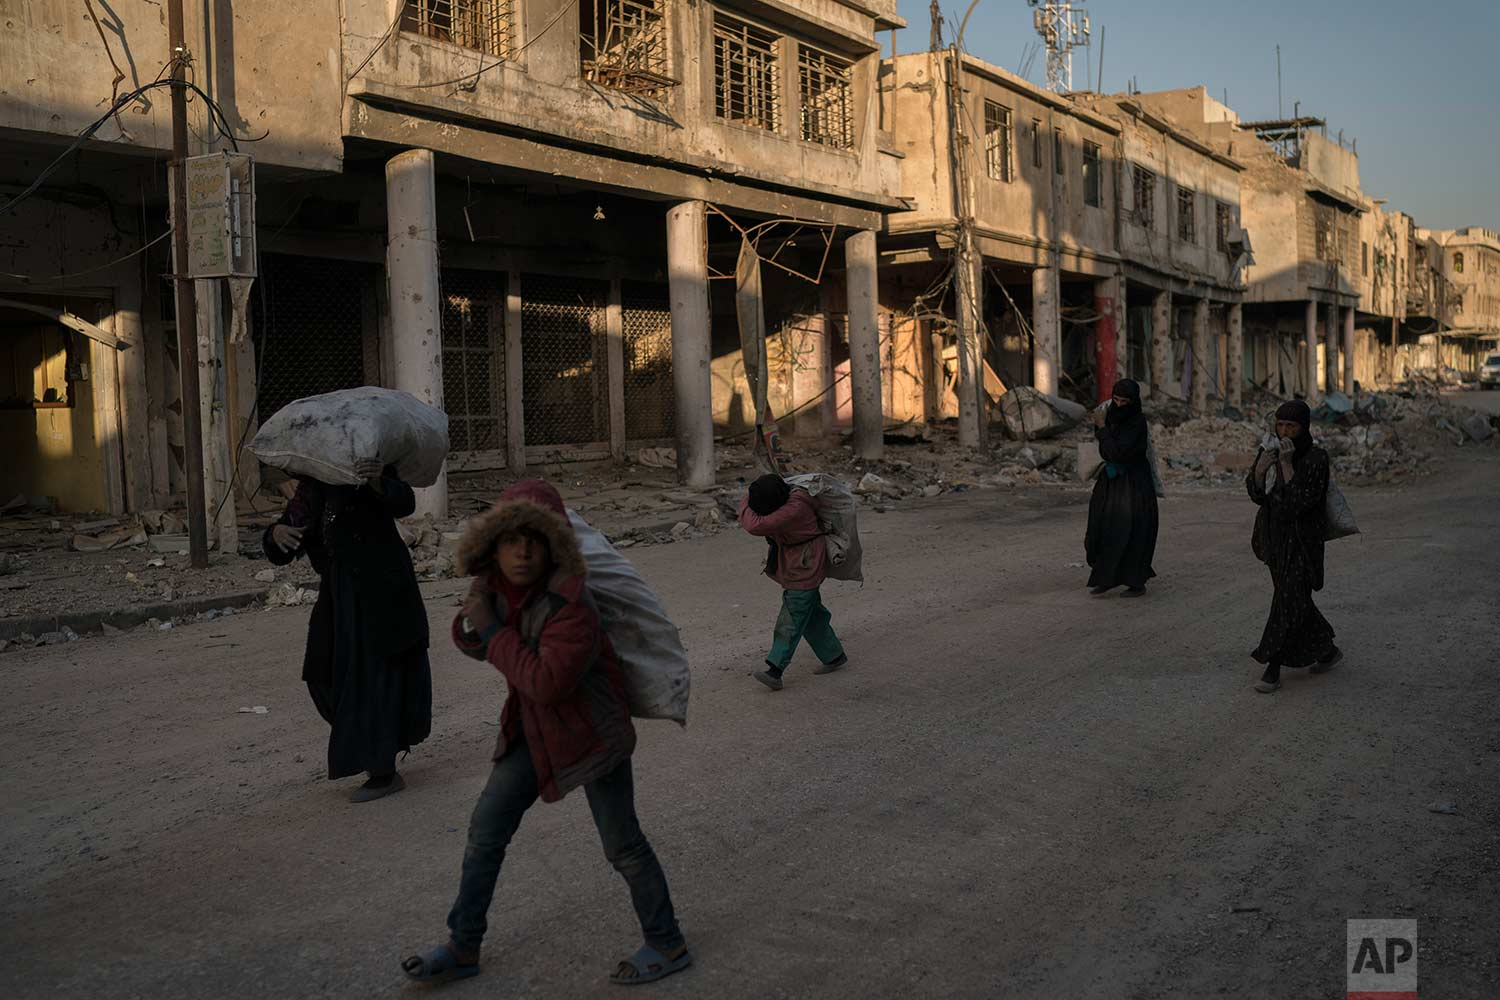 In this Nov. 16, 2017 photo, children and women carry metal scraps they collected from the rubble in the Old City of Mosul, Iraq. (AP Photo/Felipe Dana)